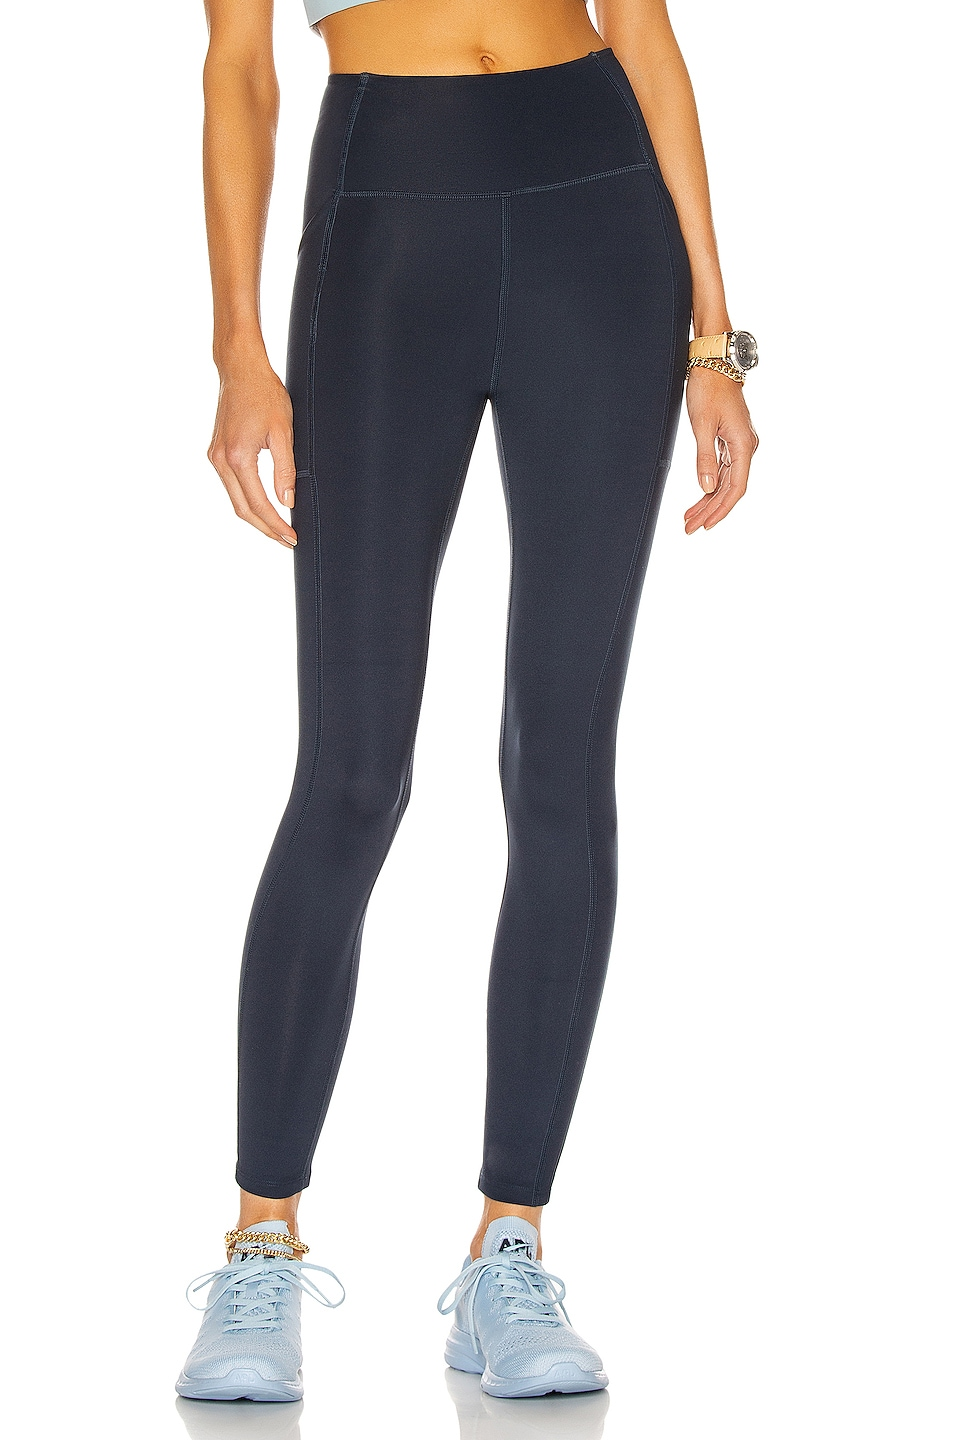 Image 1 of Girlfriend Collective High-Rise Pocket Legging in Midnight